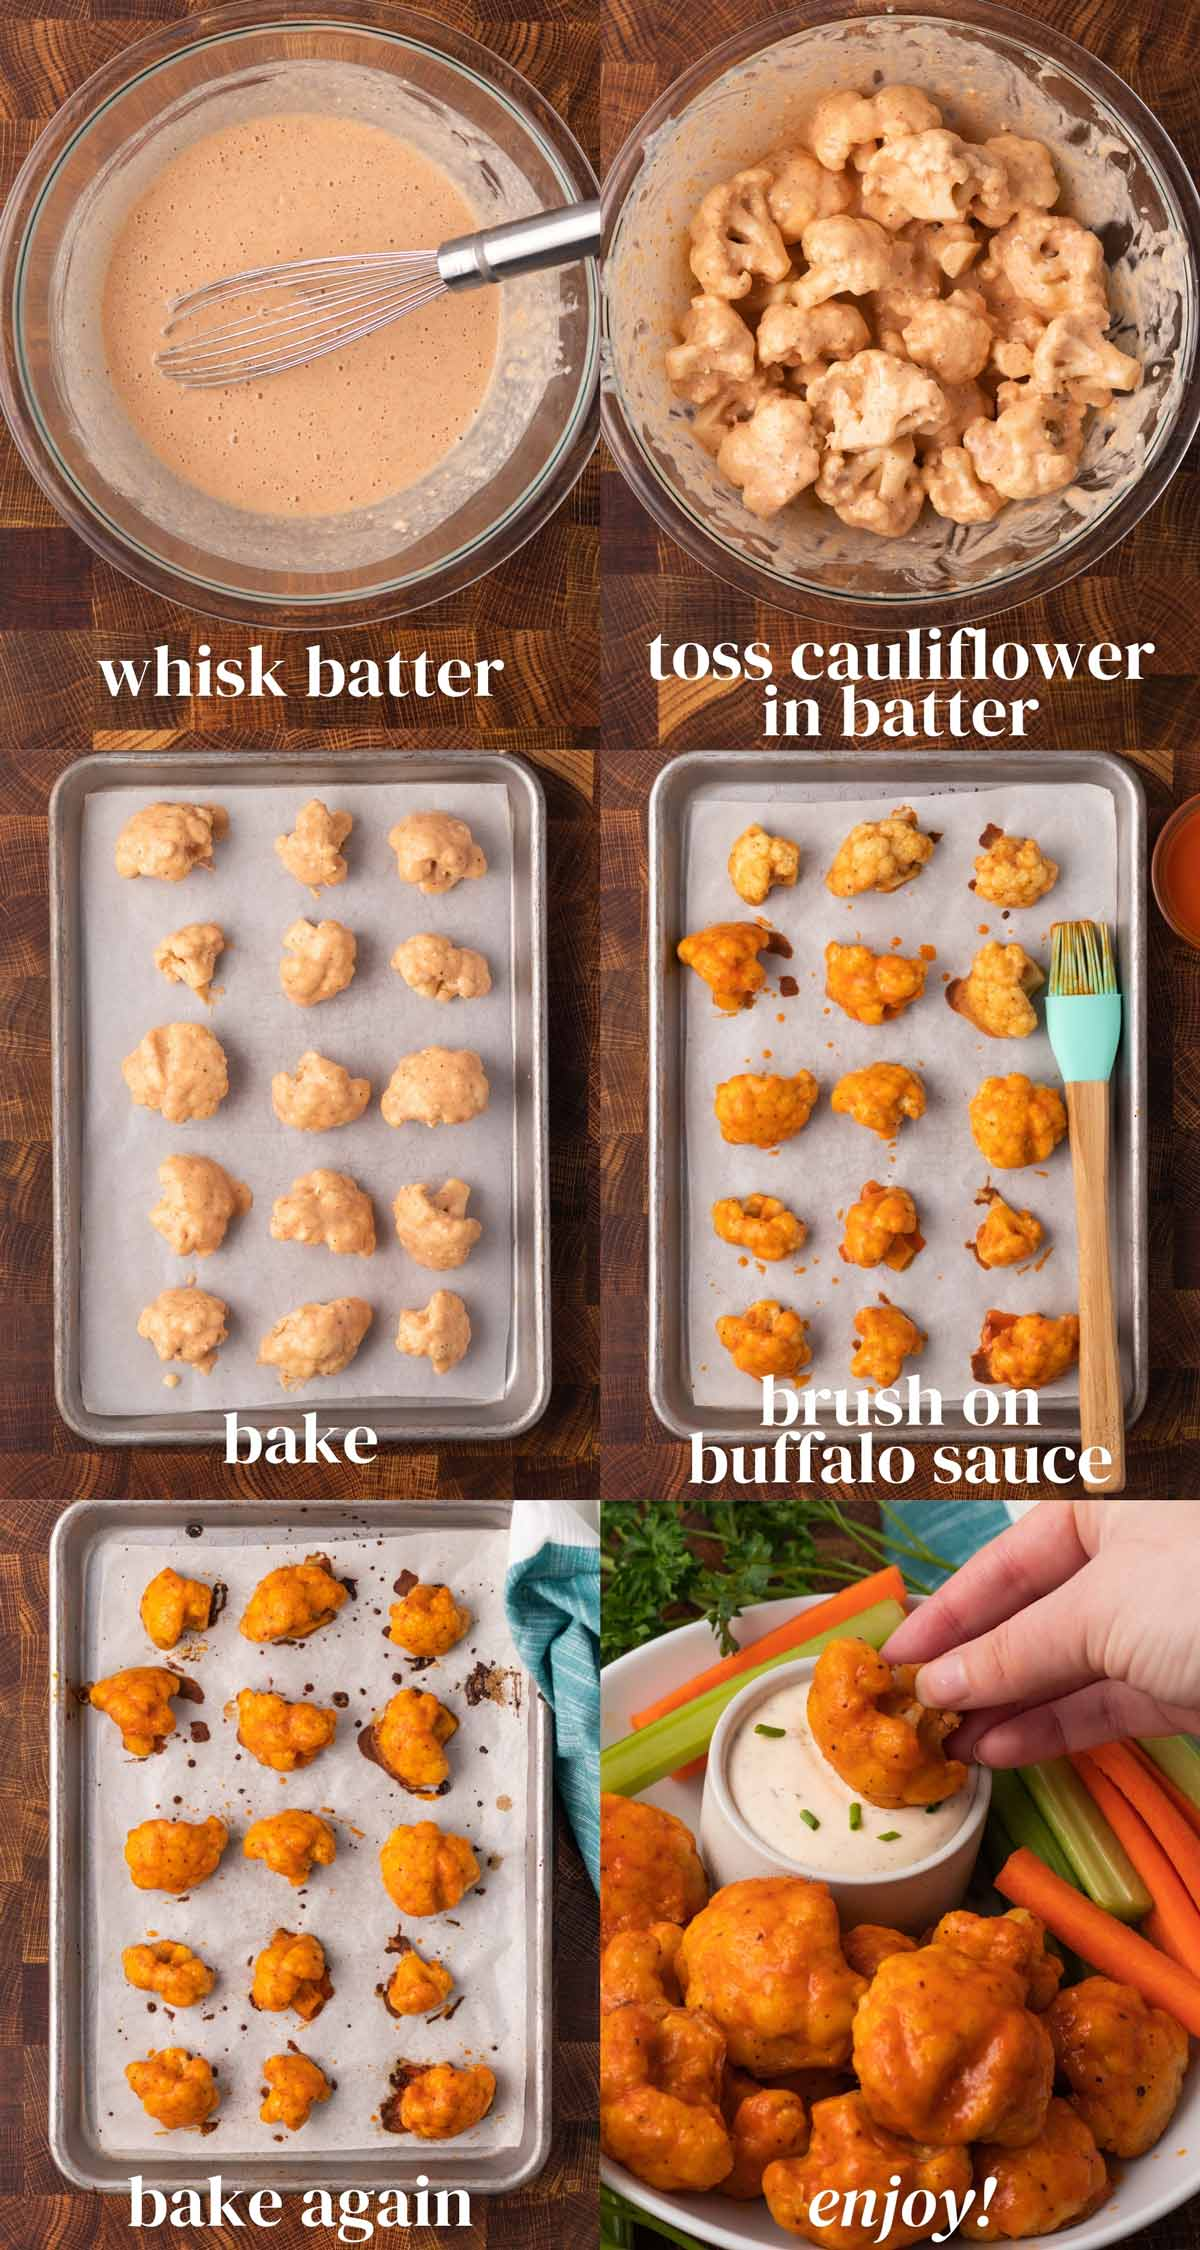 step-by-step process for making cauliflower bites.